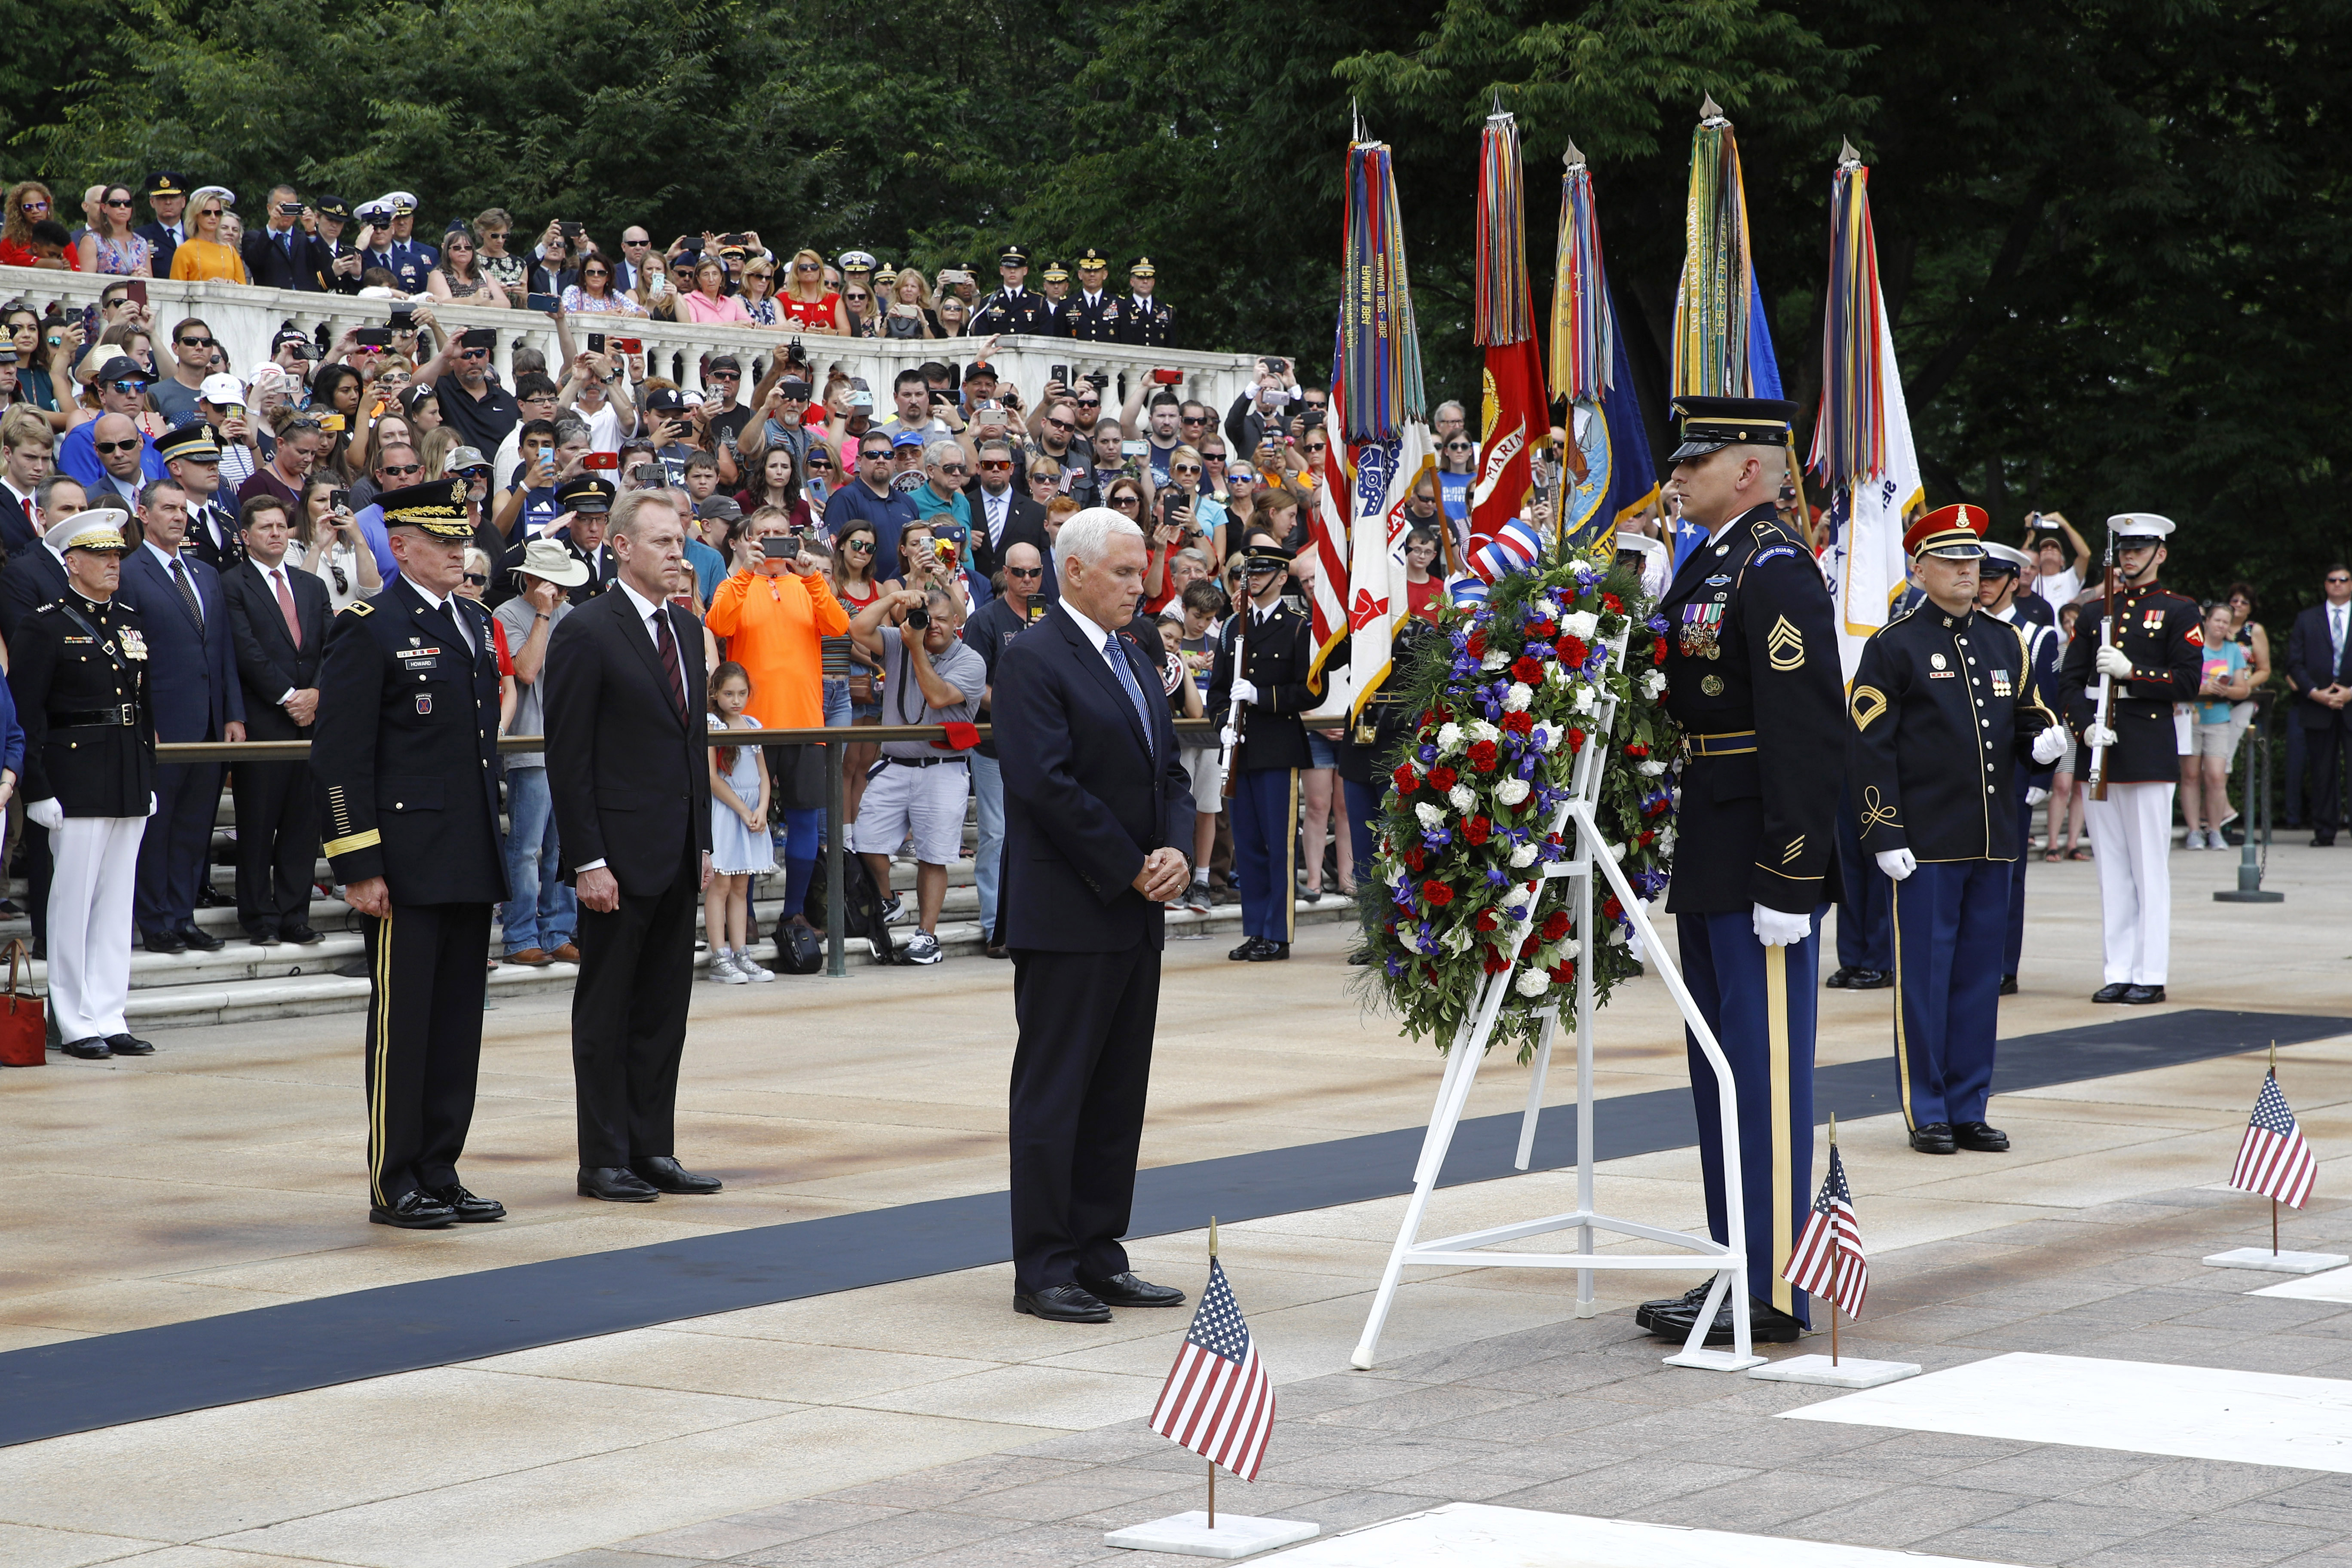 Vice President Mike Pence, center, pauses after placing a wreath in front of the Tomb of the Unknown Soldier in observance of Memorial Day, May 27, 2019, at Arlington National Cemetery in Arlington, Virginia.